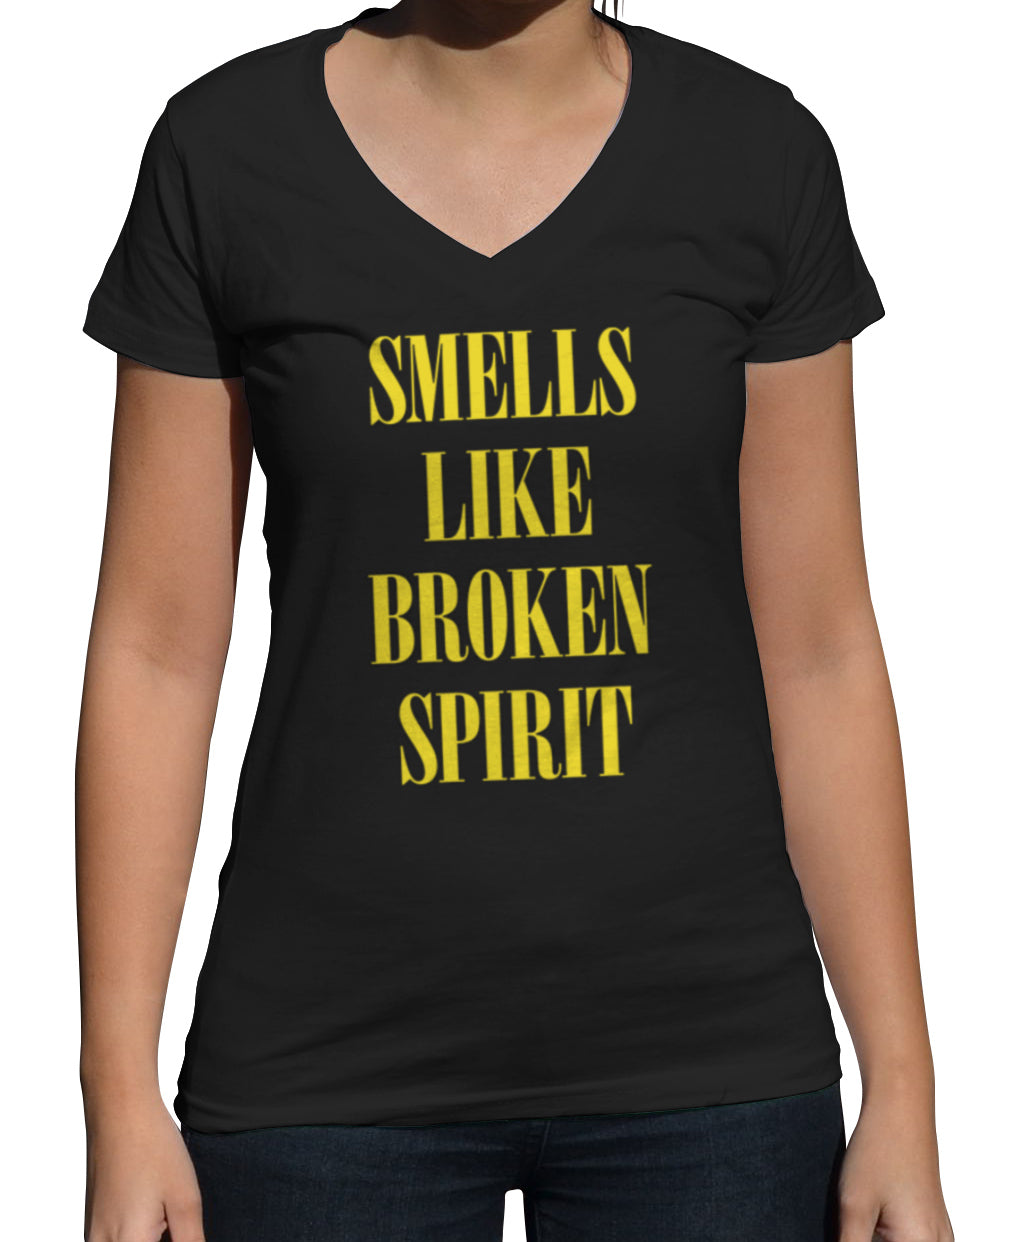 Women's Smells Like Broken Spirit Vneck T-Shirt